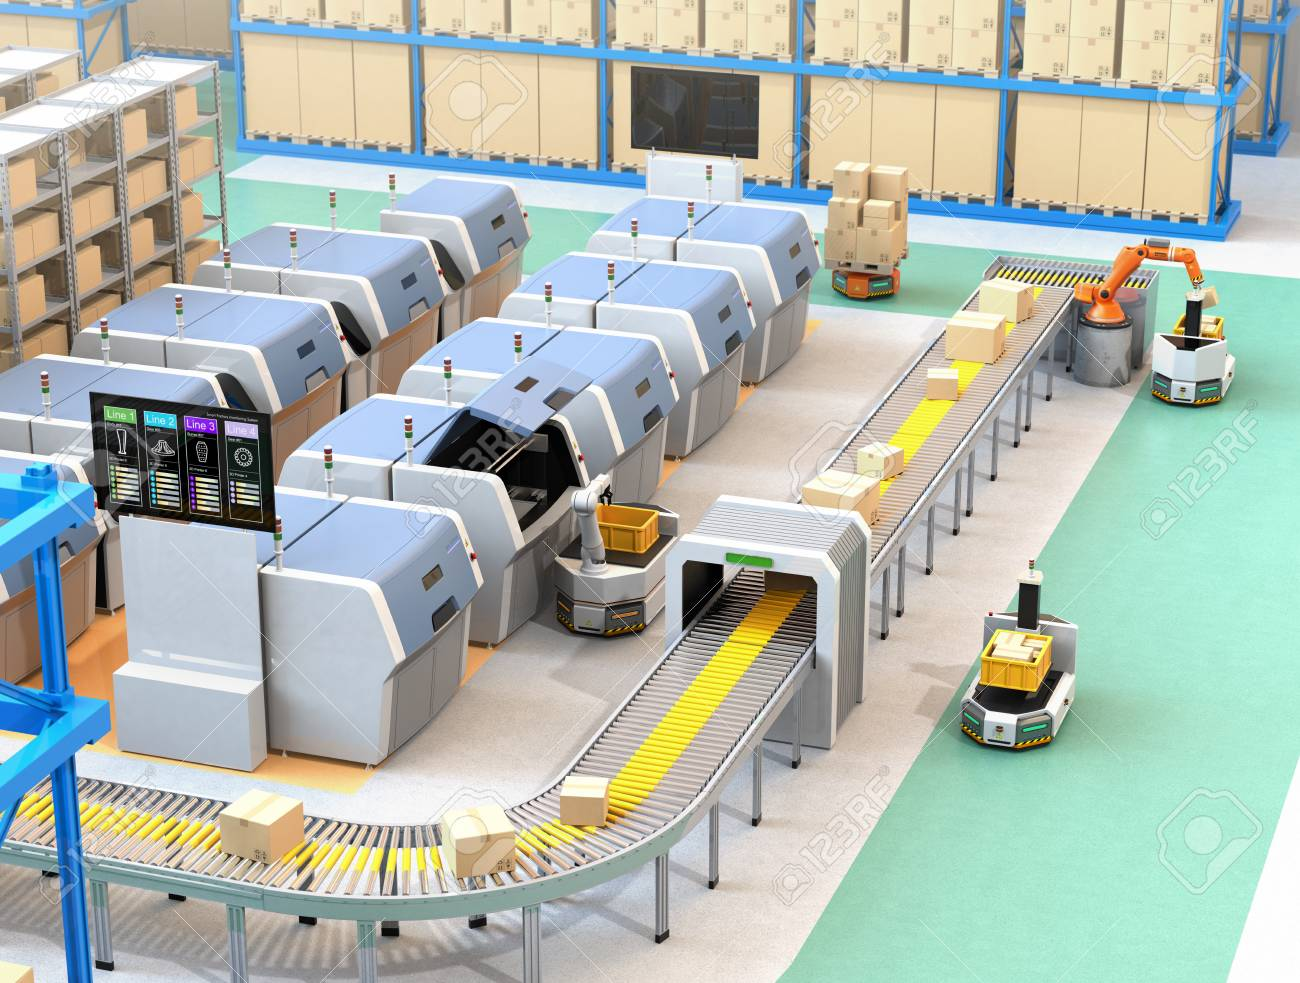 Smart factory equipped with AGV, robot carrier, 3D printers and robotic picking system. 3D rendering image. - 92781866